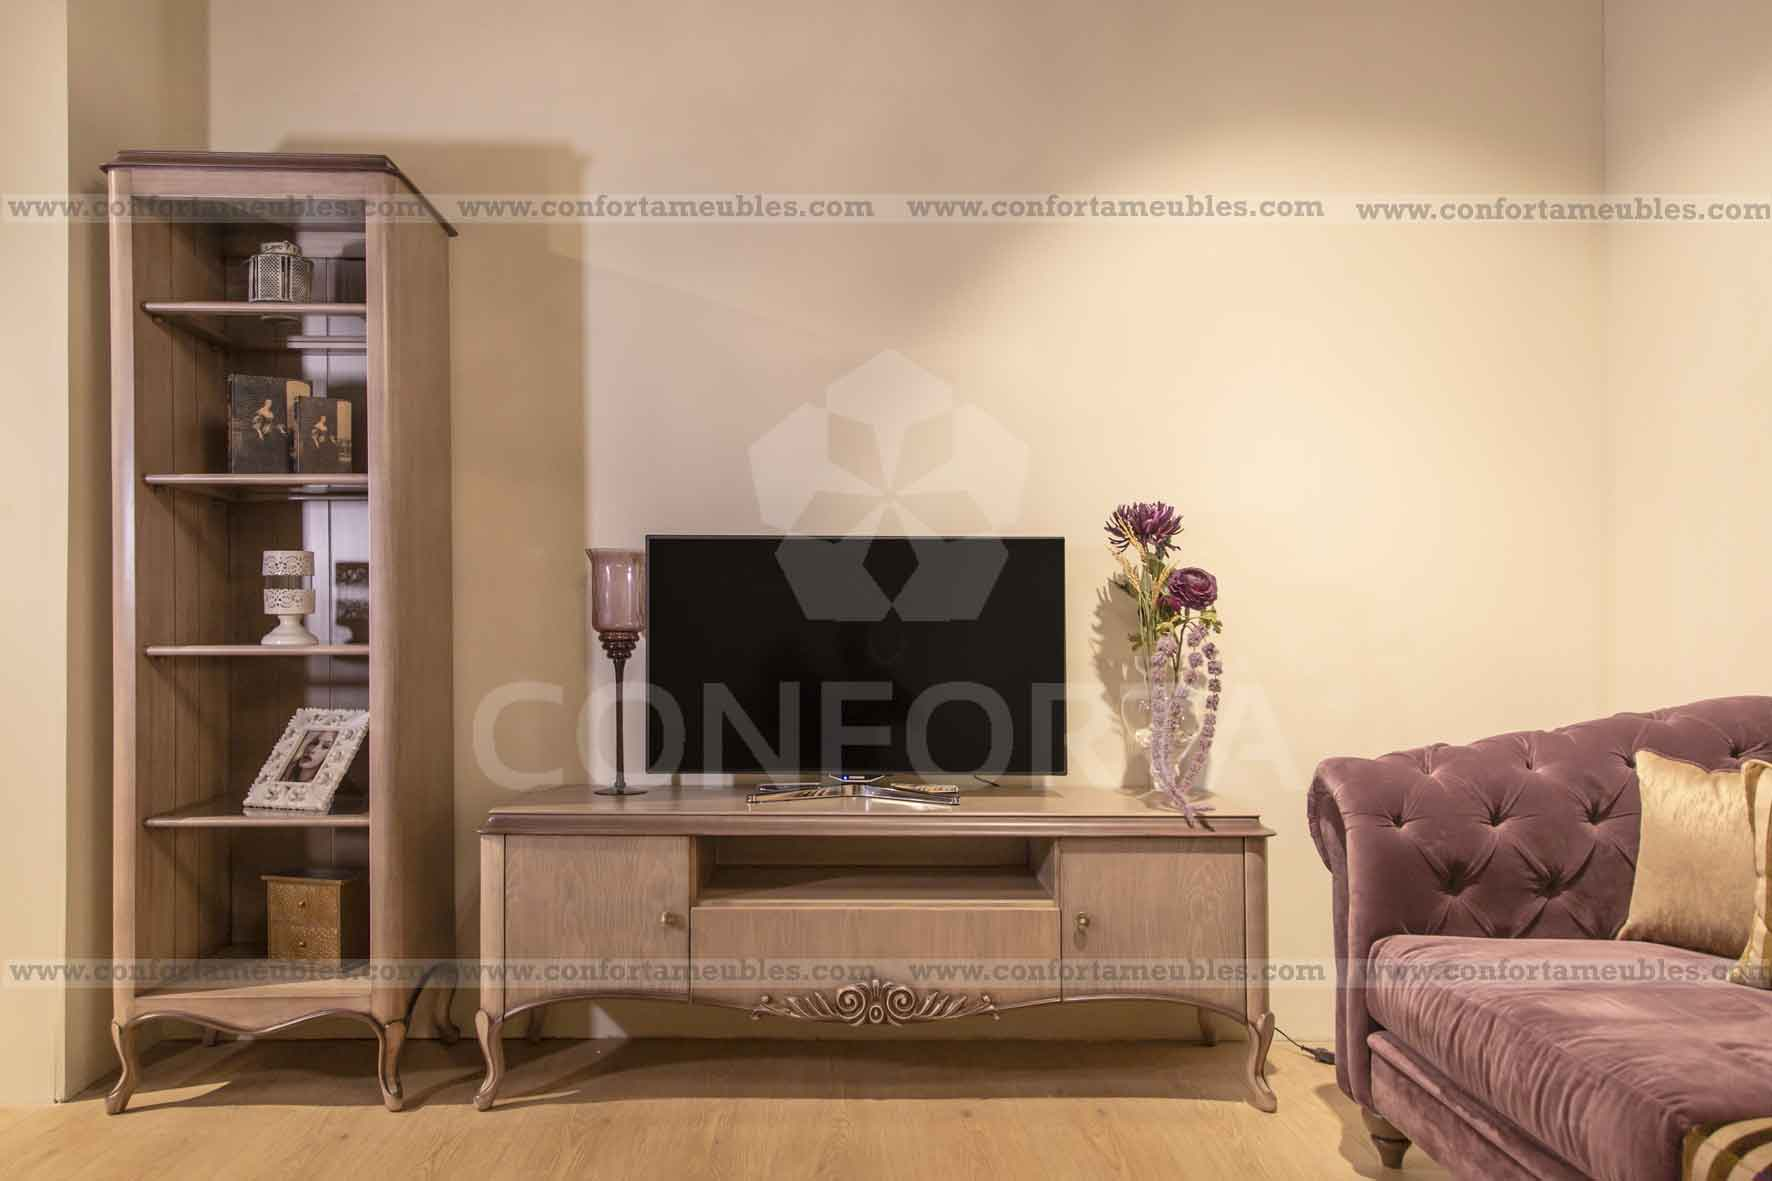 meuble tv tunisie meubles et d coration tunisie. Black Bedroom Furniture Sets. Home Design Ideas